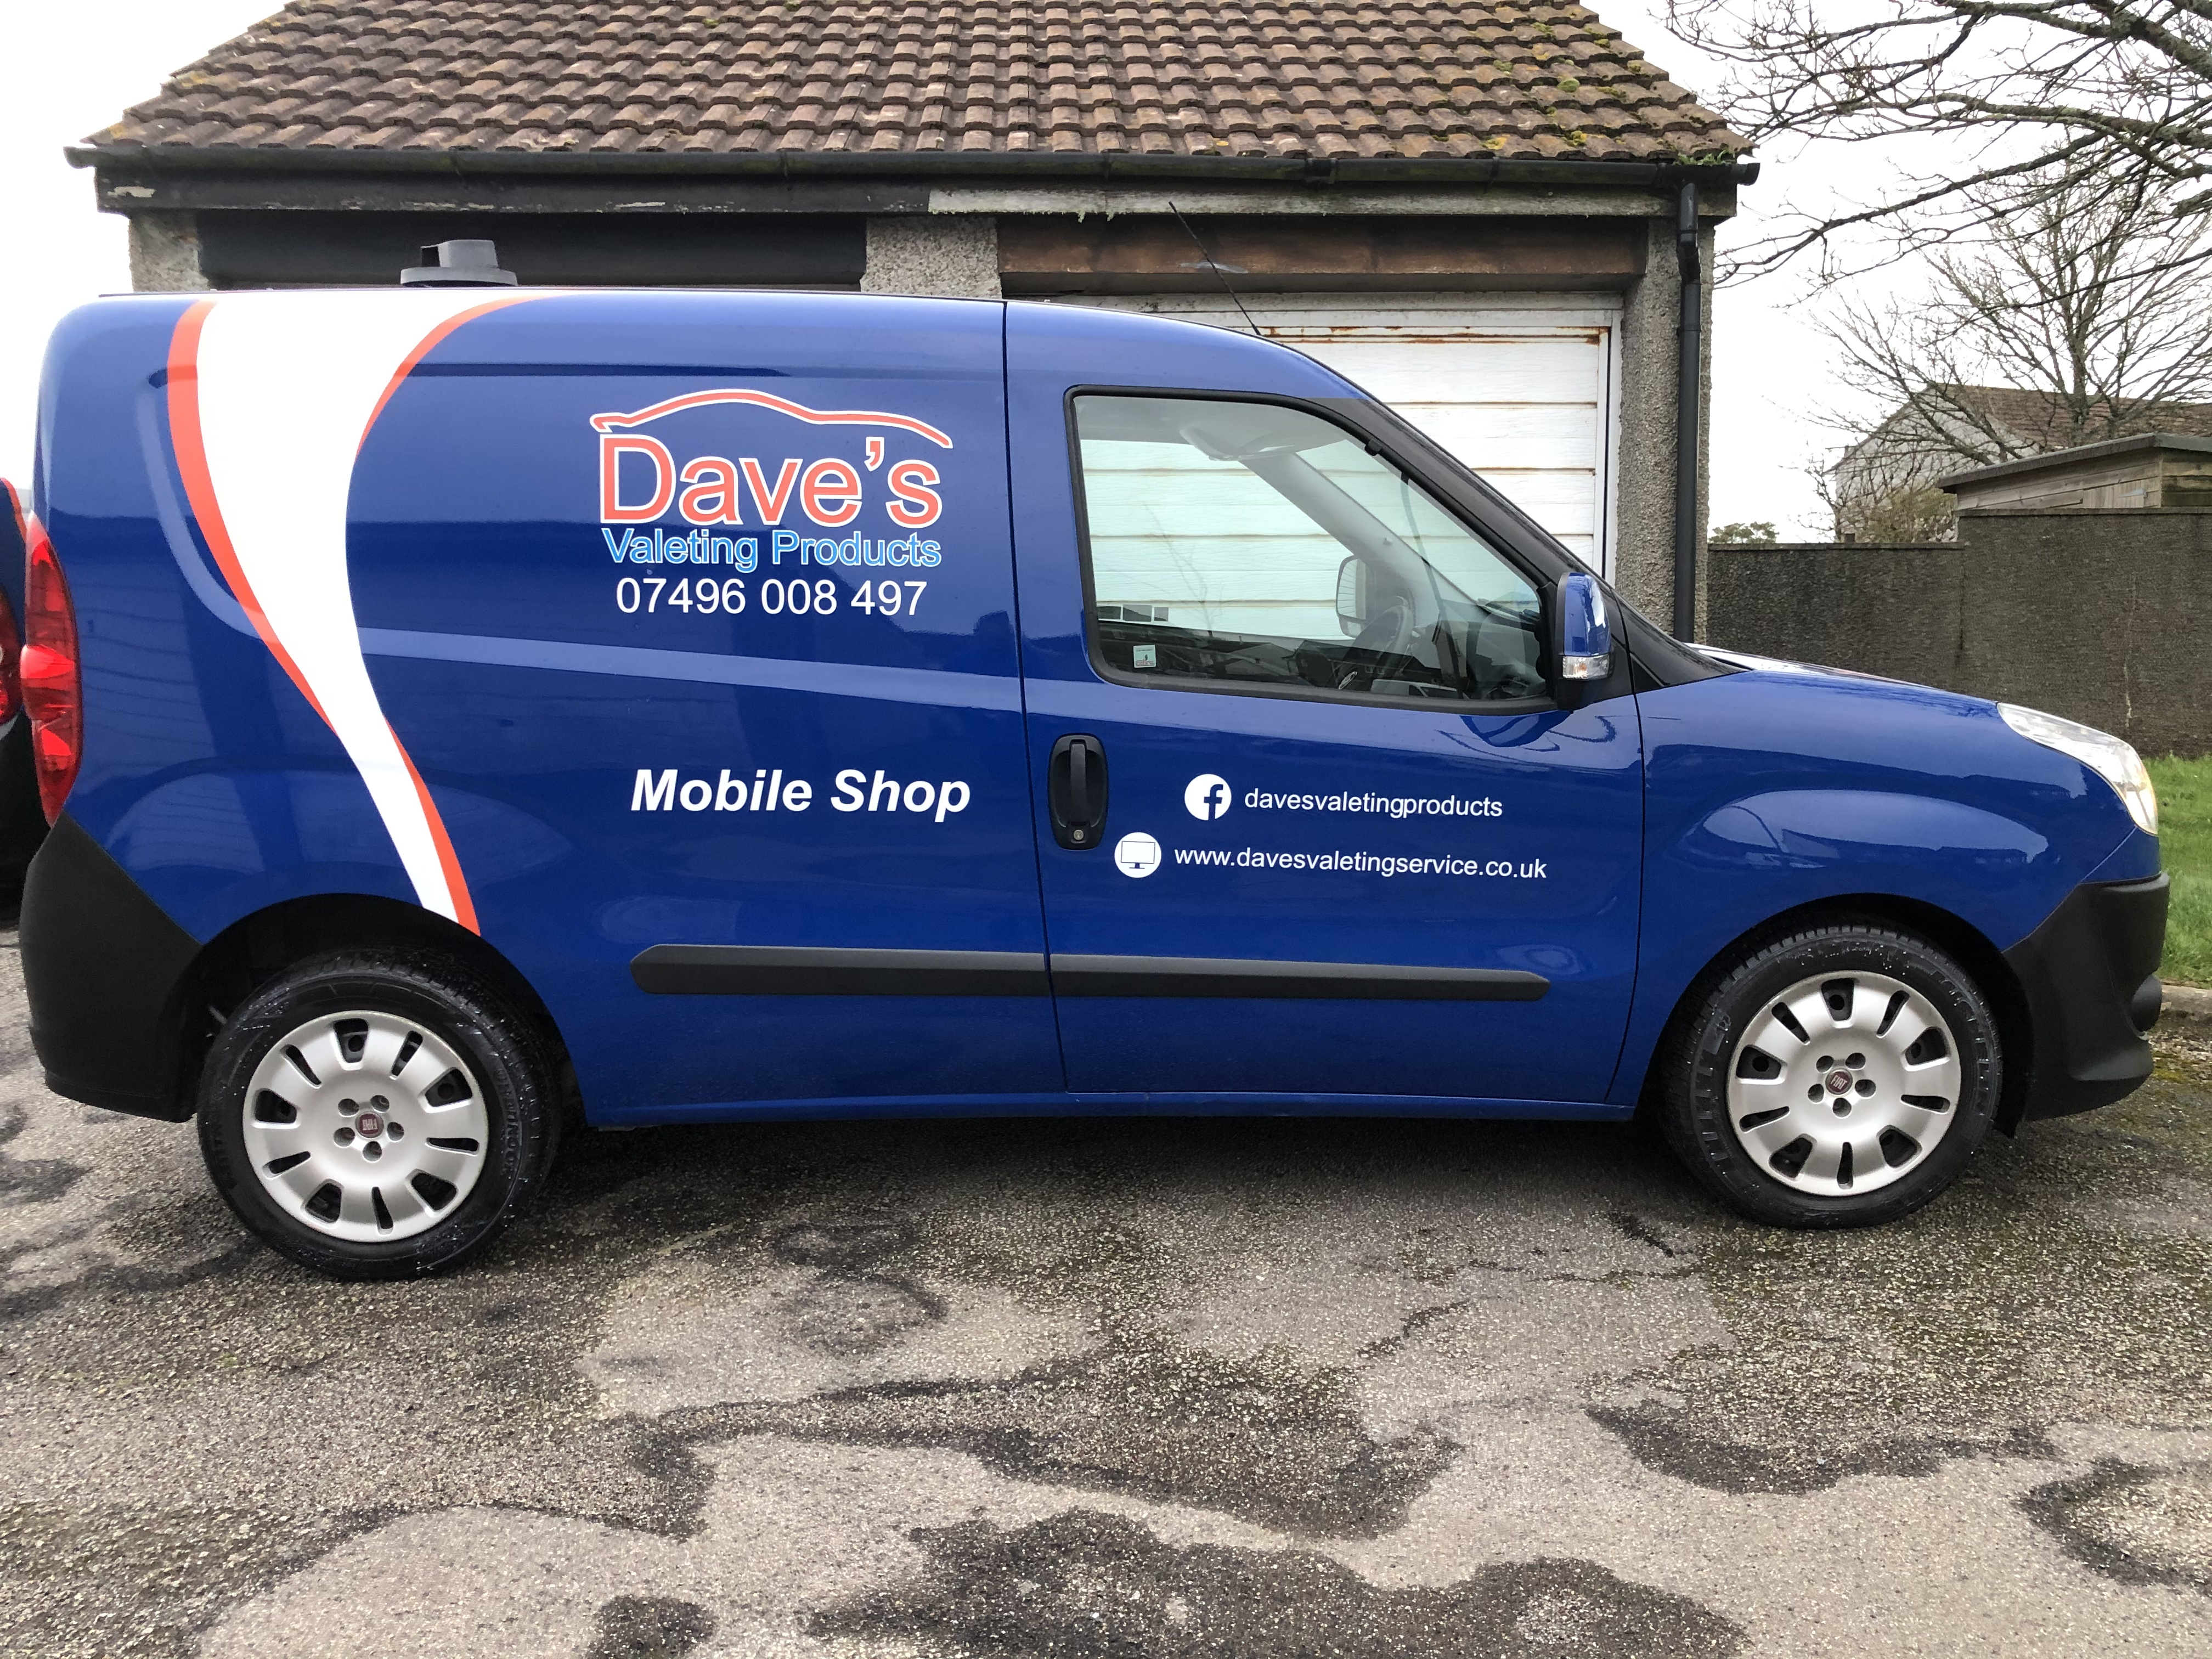 Image #1 from Dave's Valeting service